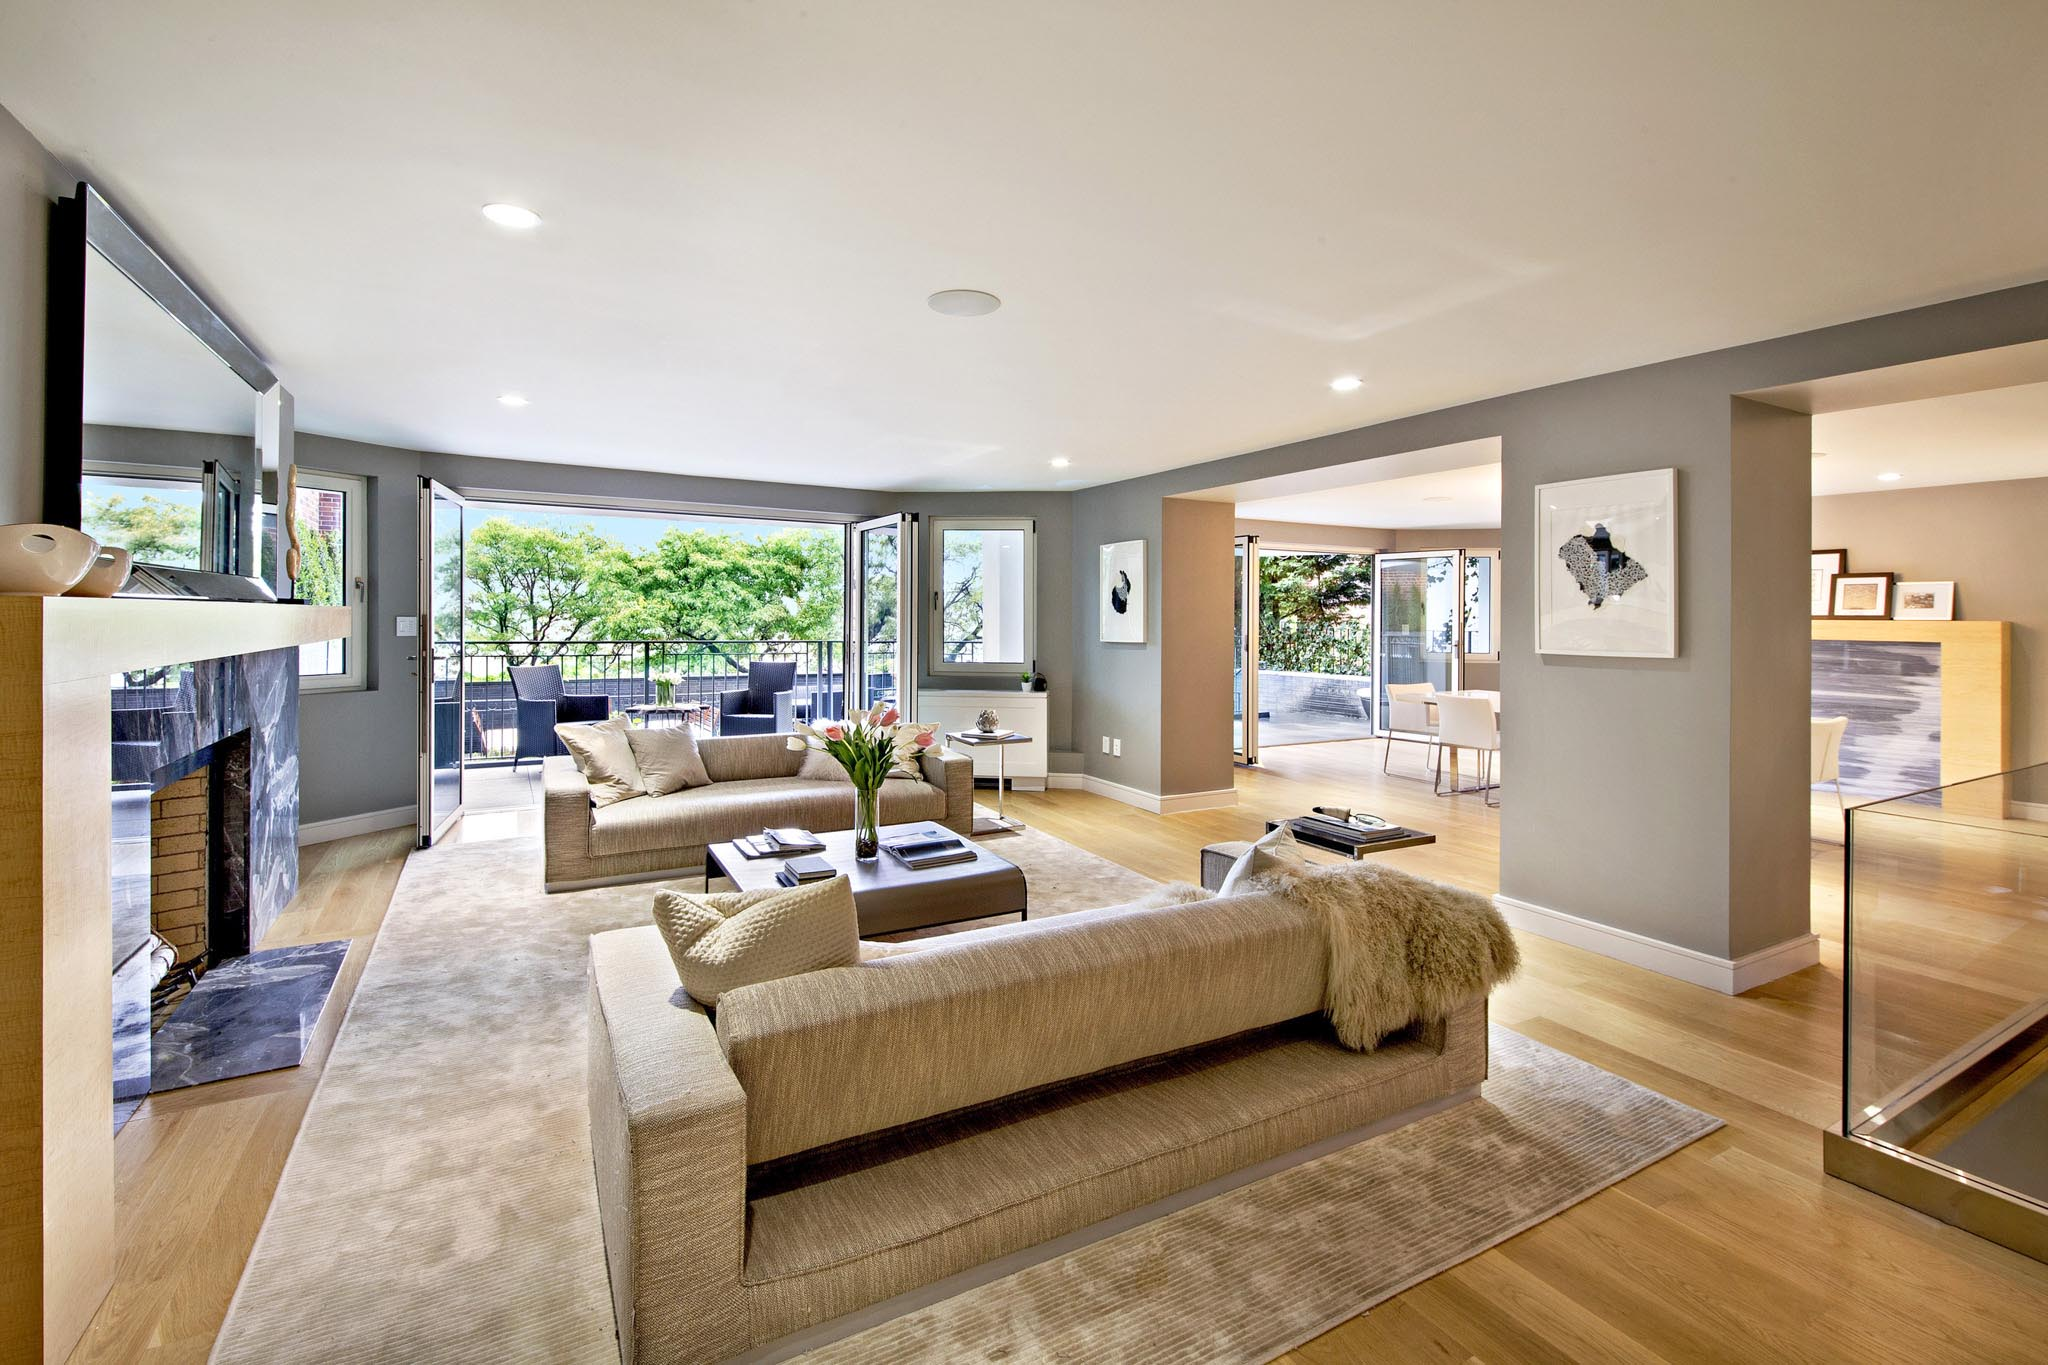 new york city highend townhome with indoor/outdoor living and folding glass walls